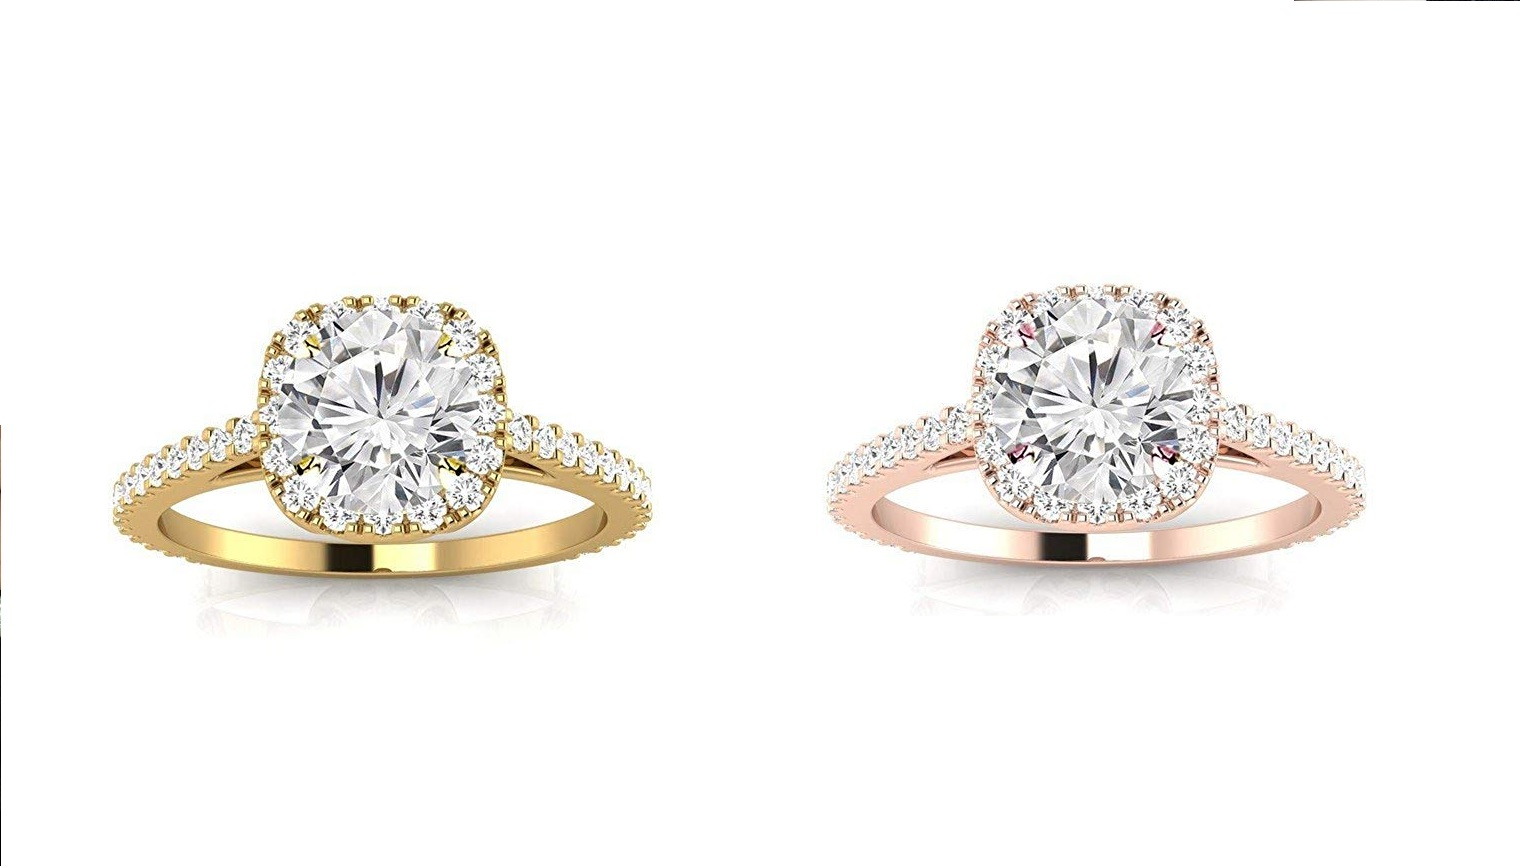 Diamond Engagement Rings 2020